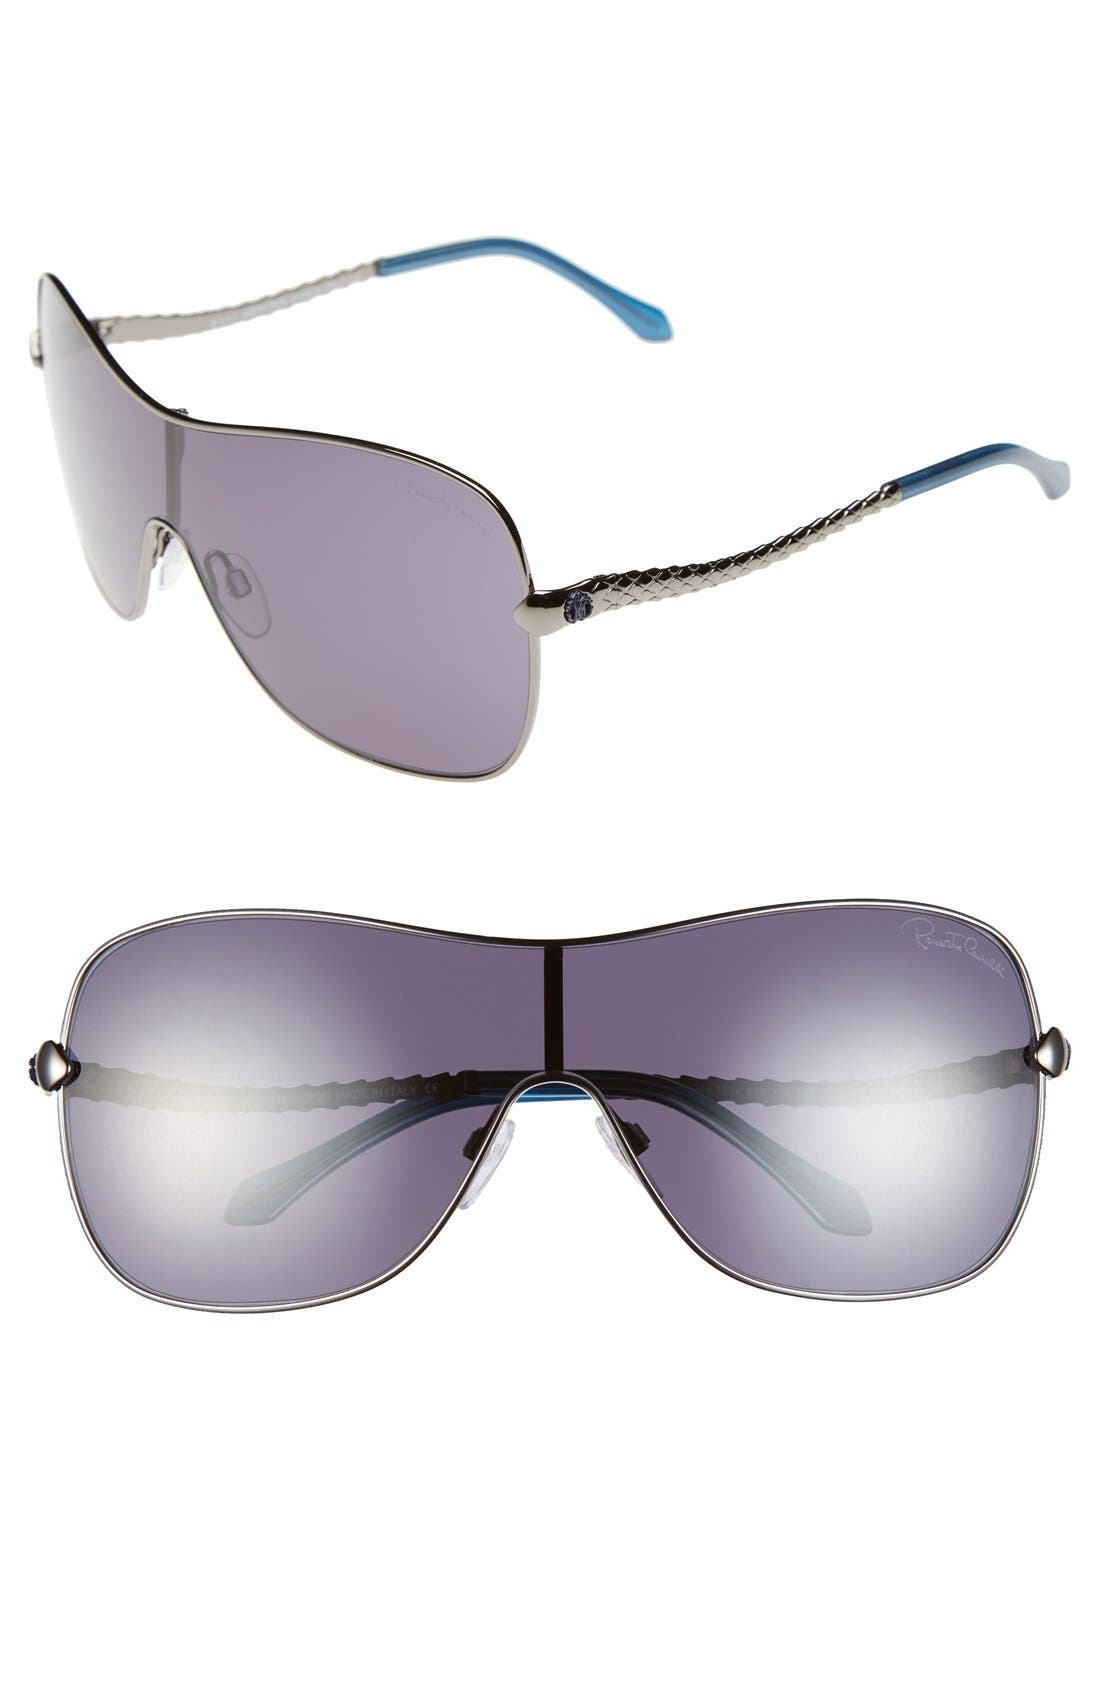 Alternate Image 1 Selected - Roberto Cavalli 'Agena' Shield Sunglasses